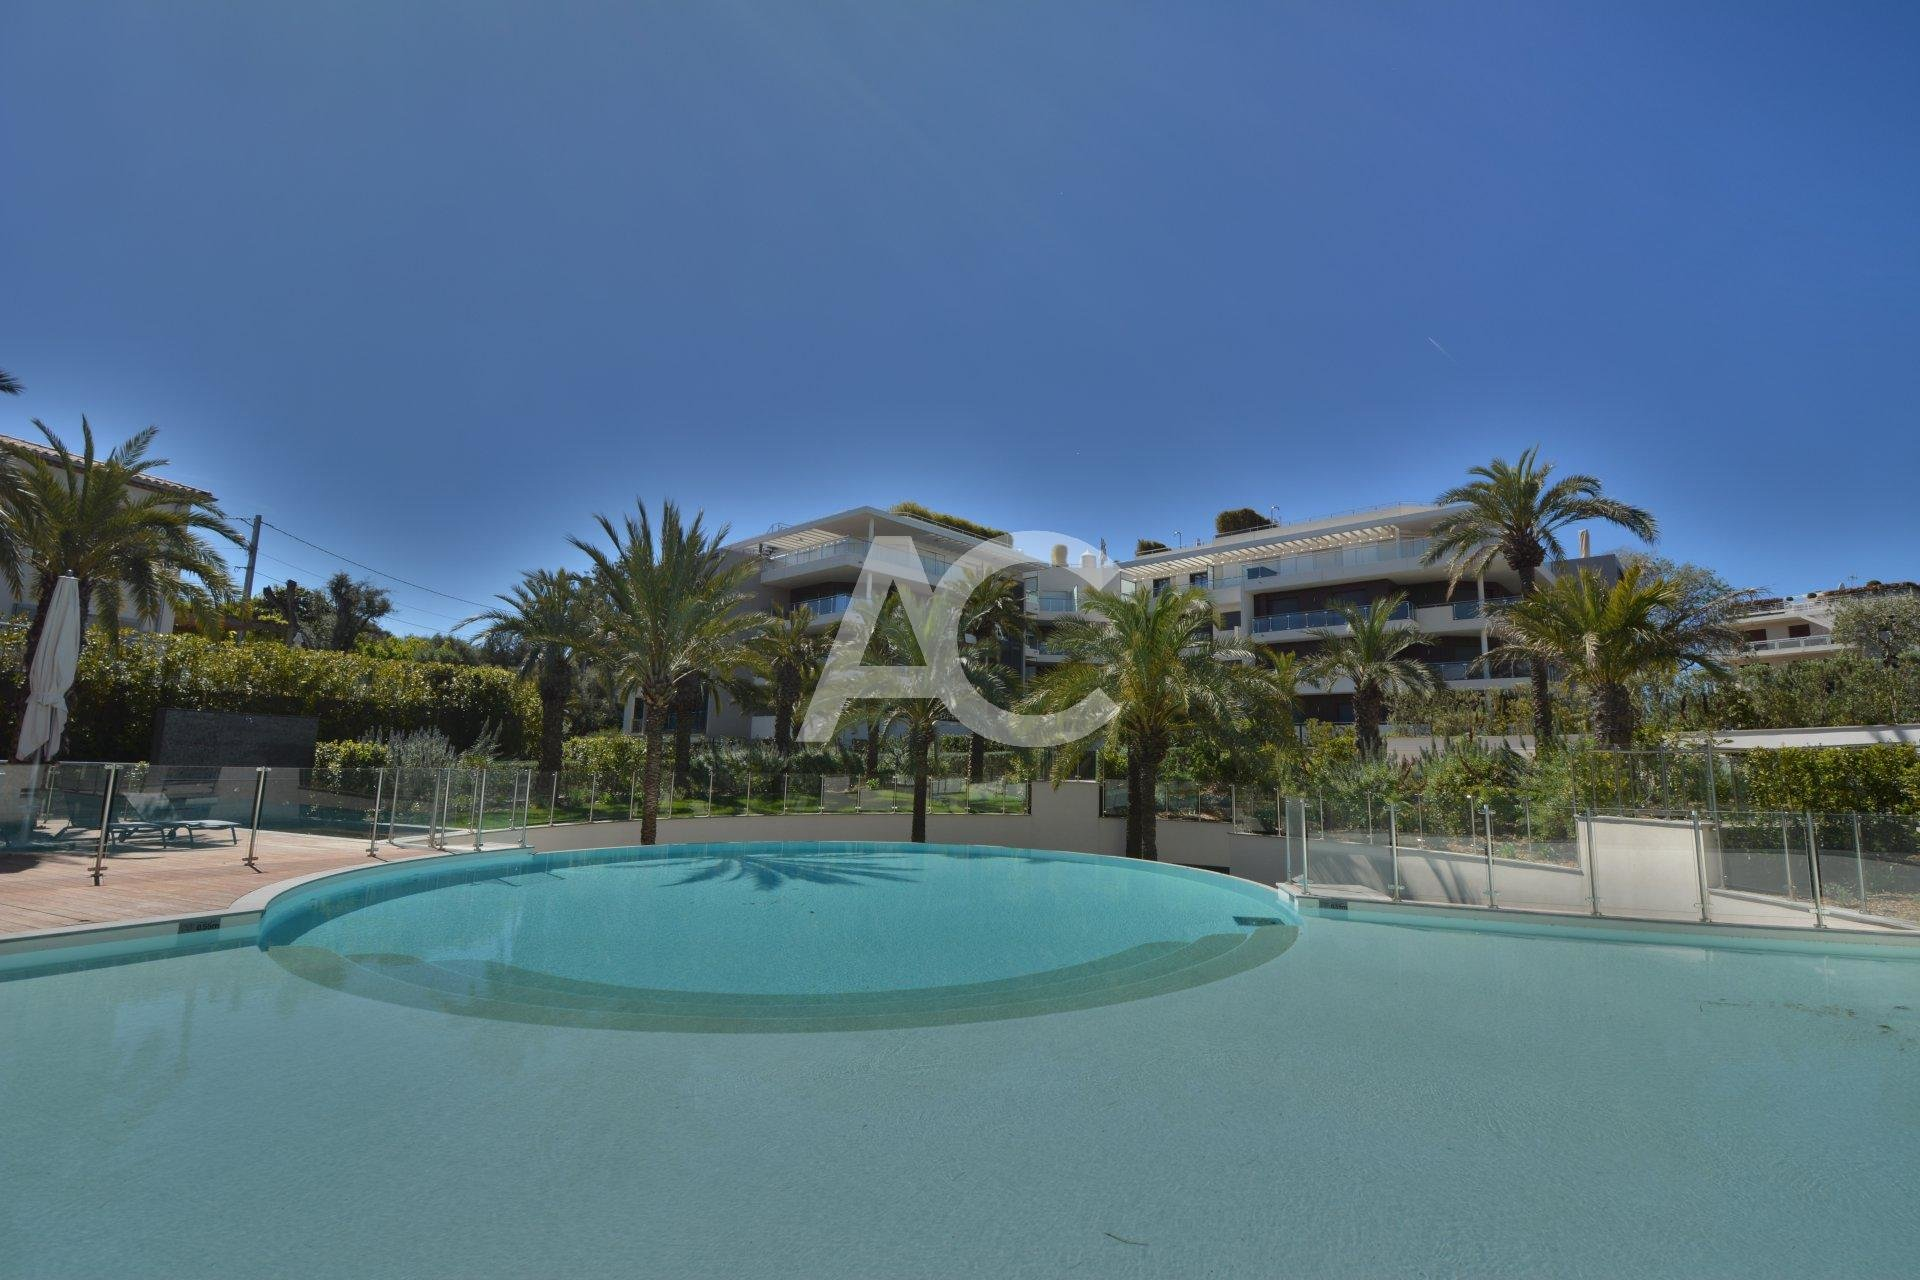 CAP D'ANTIBES - HIGH QUALITY RESIDENCE